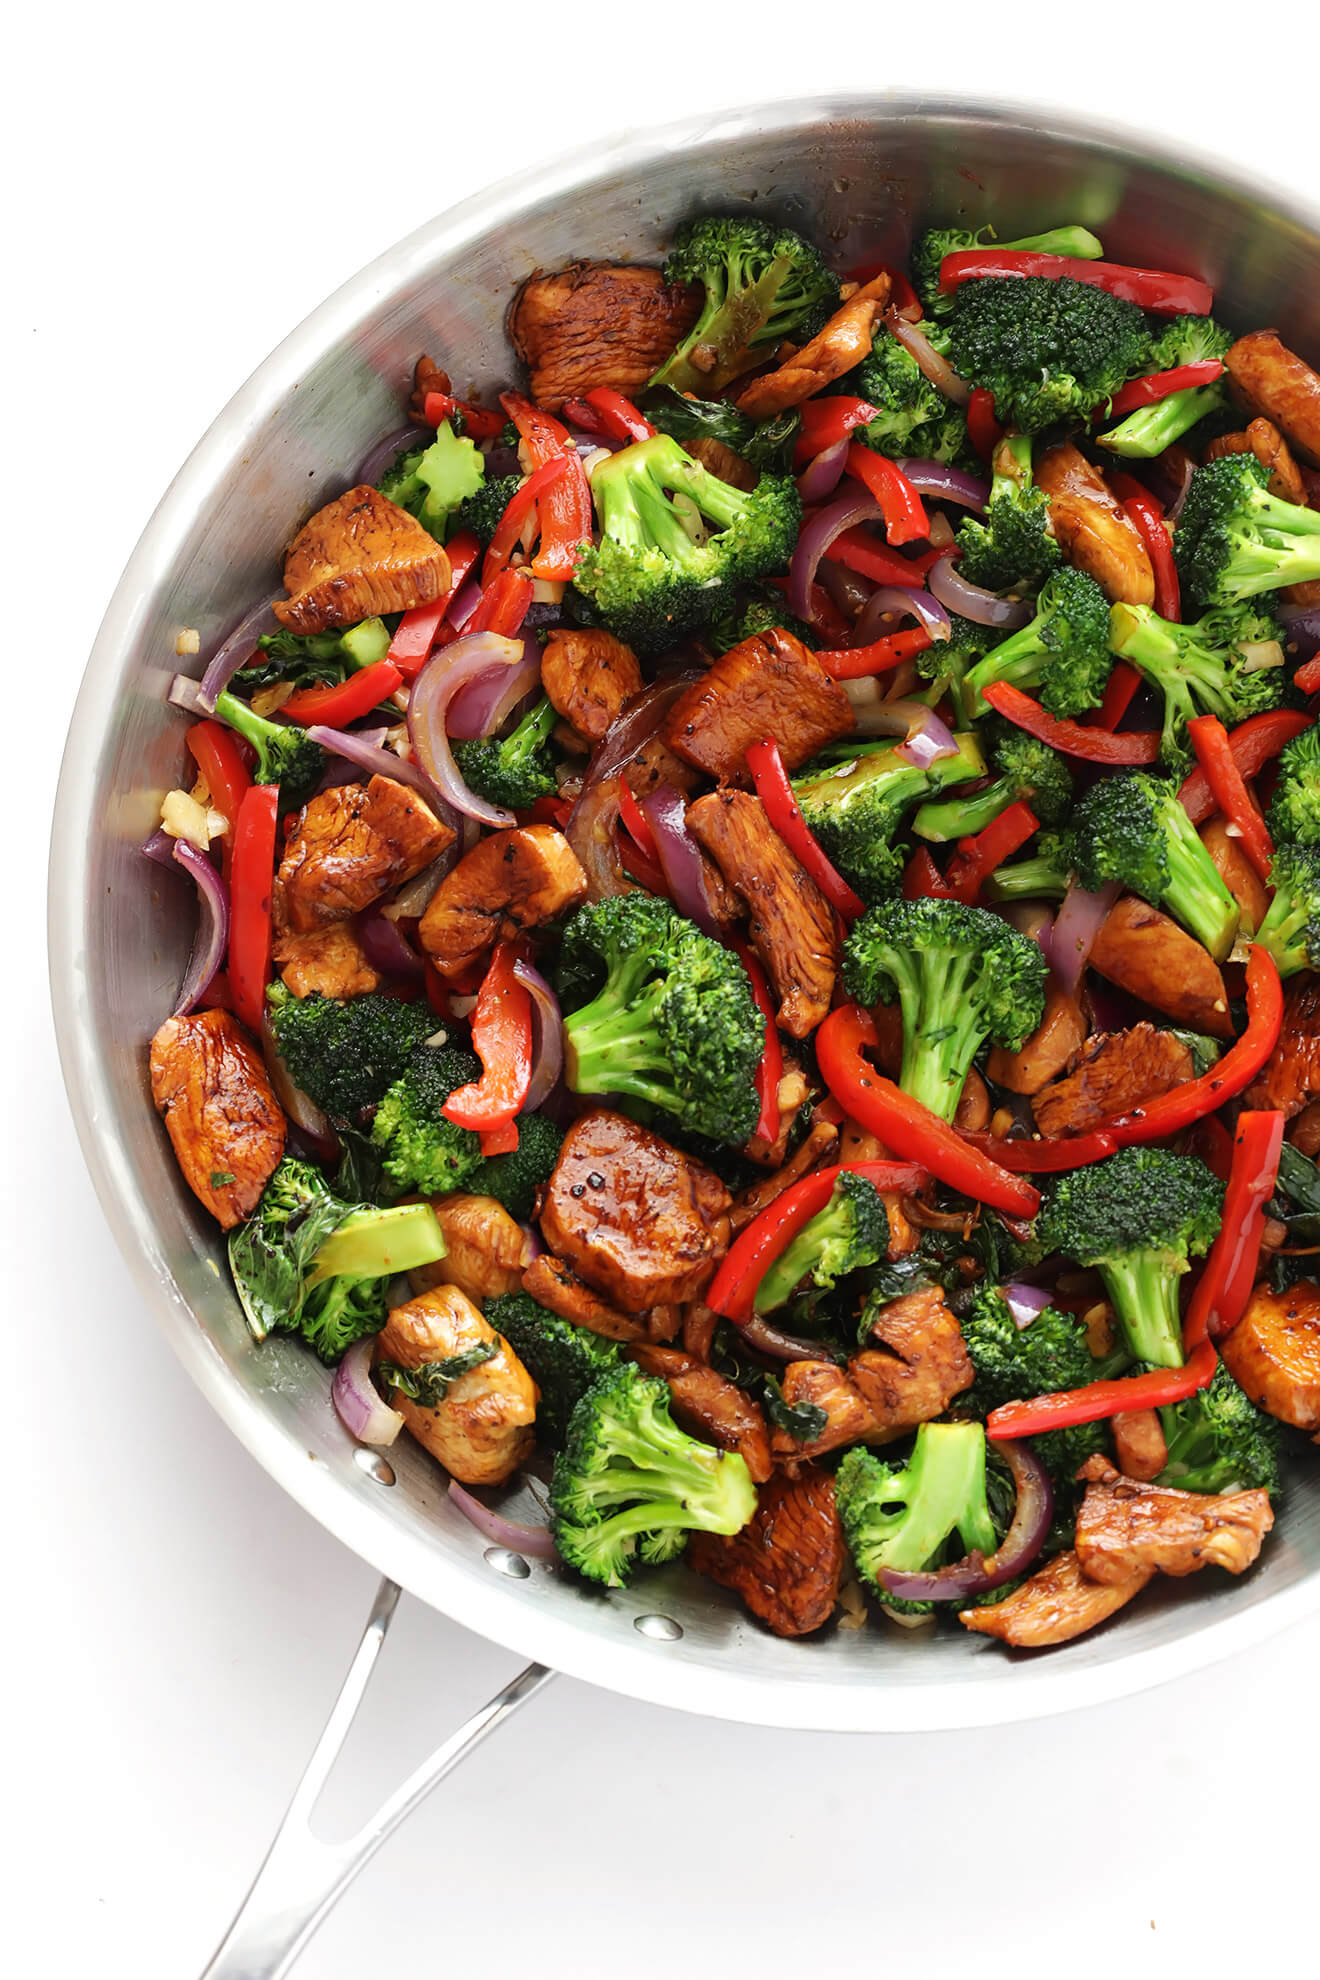 This 20-Minute Thai Basil Chicken is quick and easy to make, filled with lots of vegetables like red peppers, broccoli and onions, and tossed with a delicious sauce that everyone will love! | gimmesomeoven.com